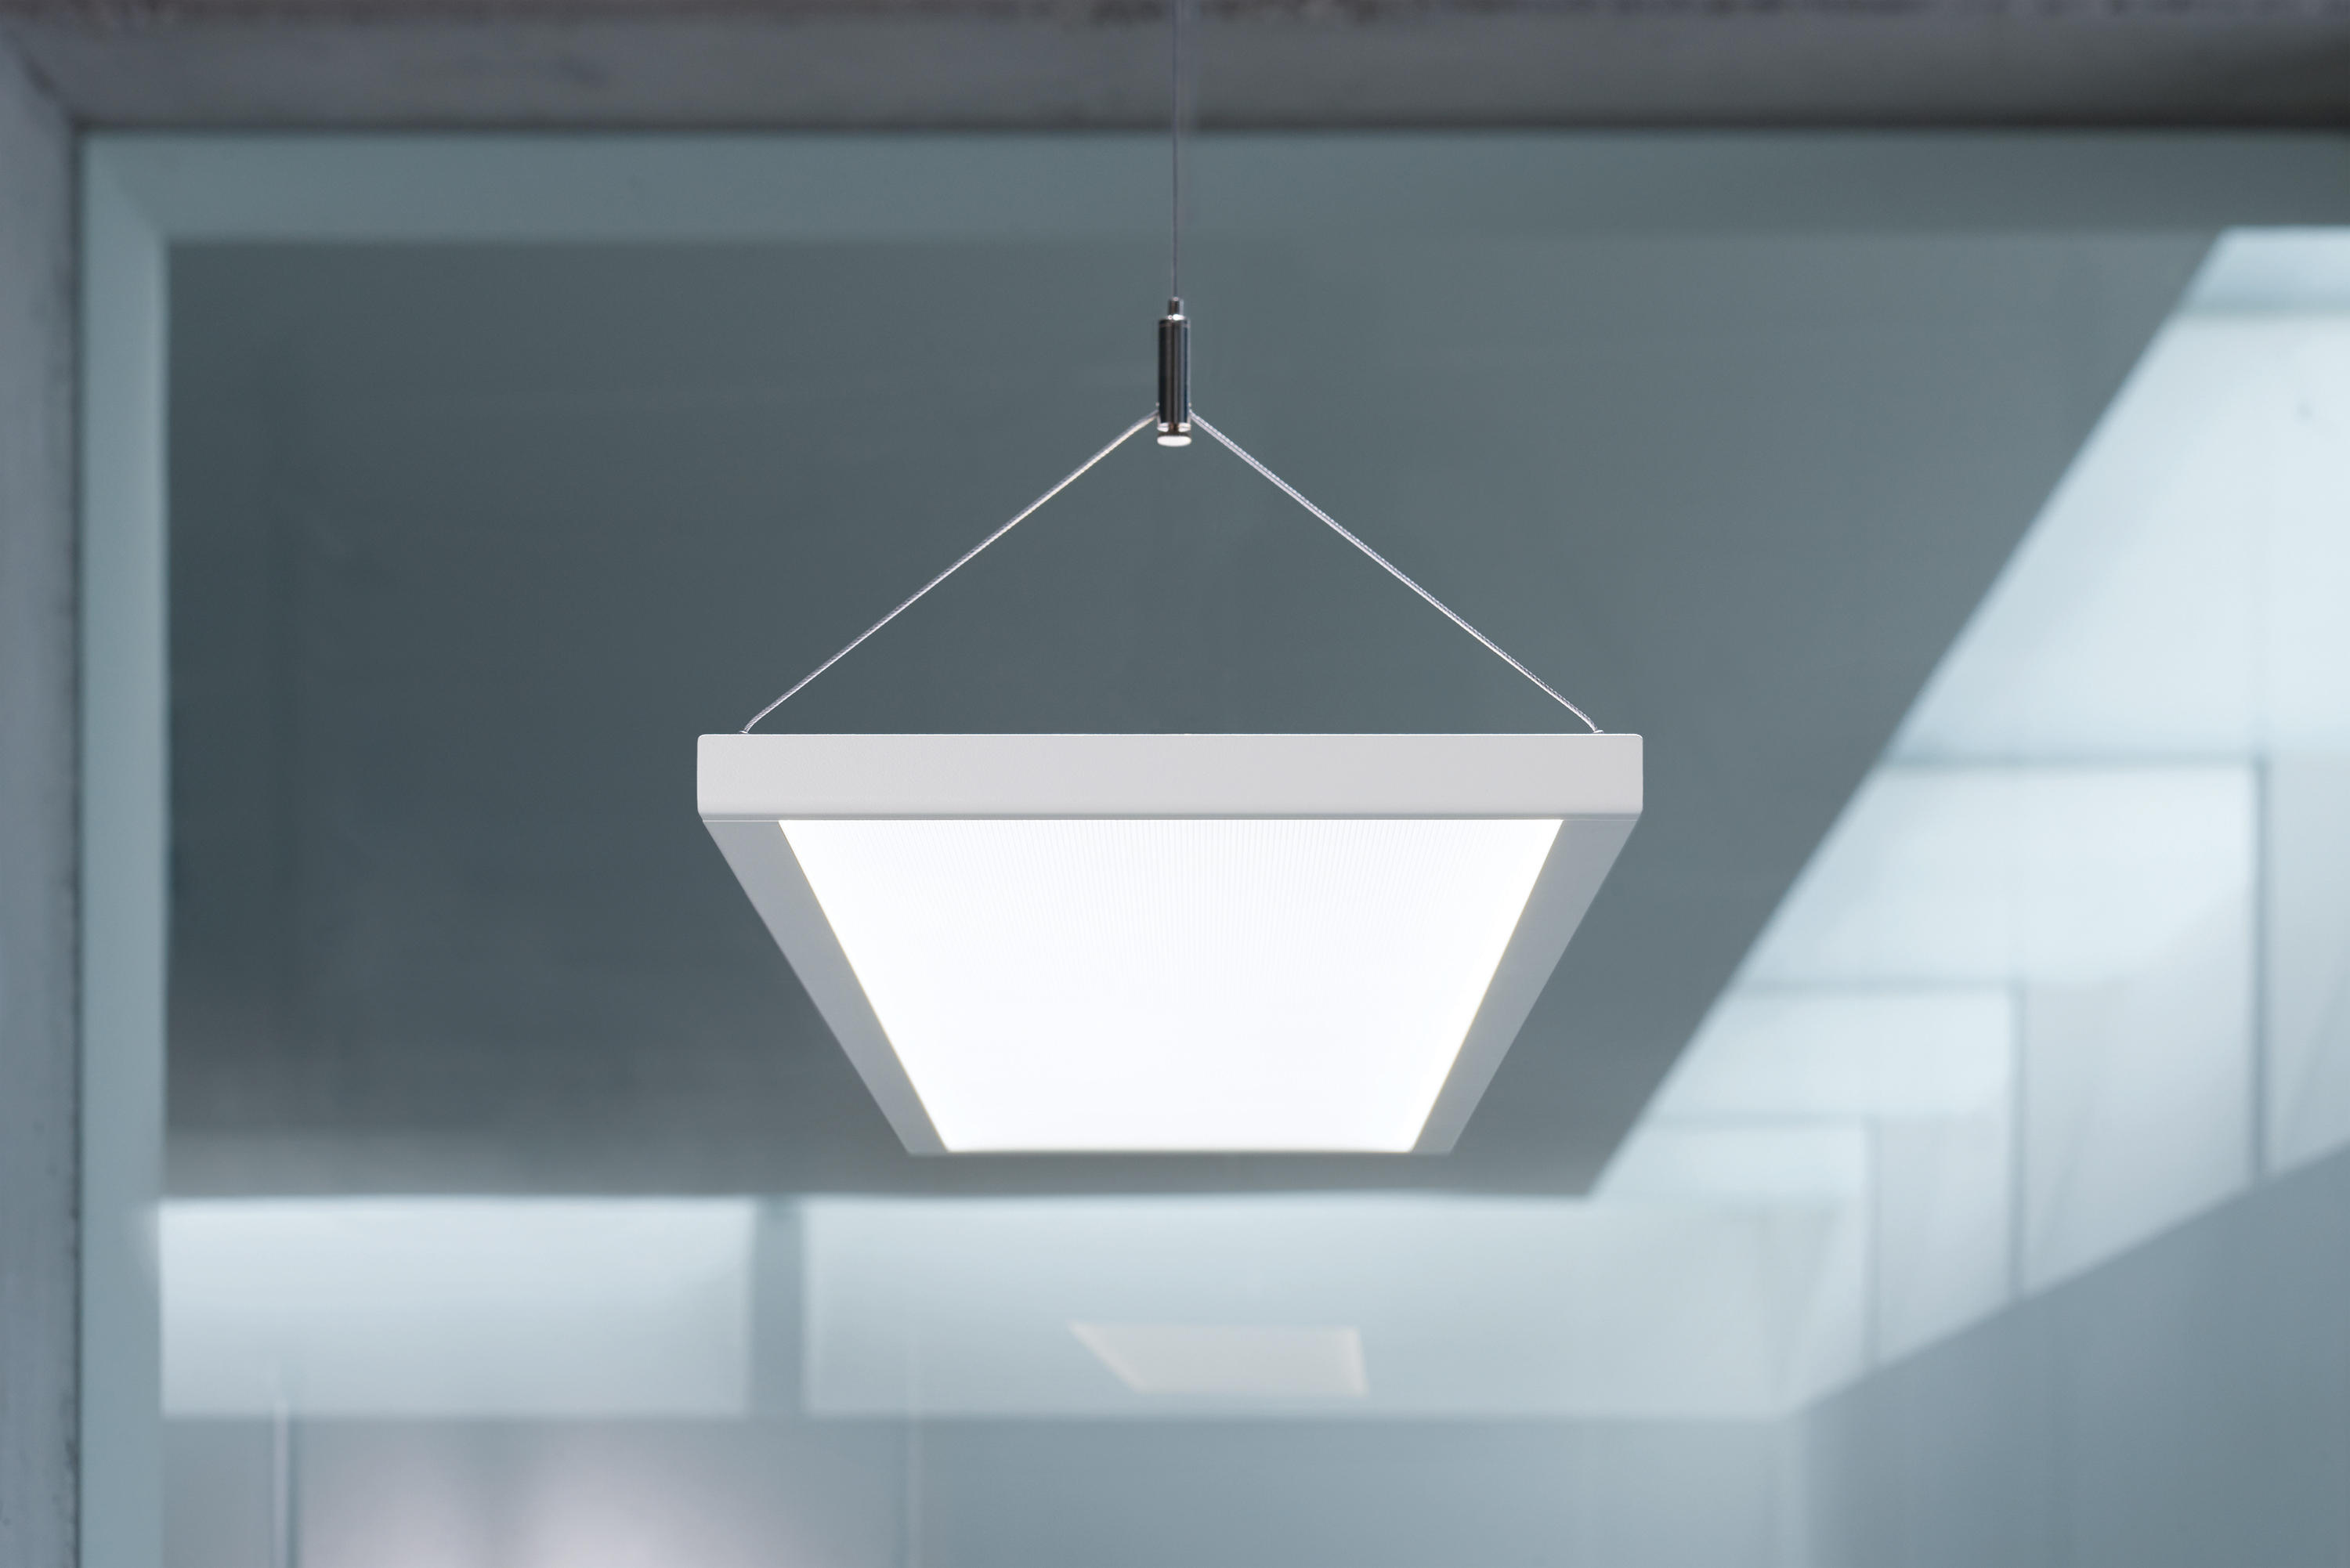 Luminaire Pendant Idoo Pendant Single Luminaire General Lighting From H